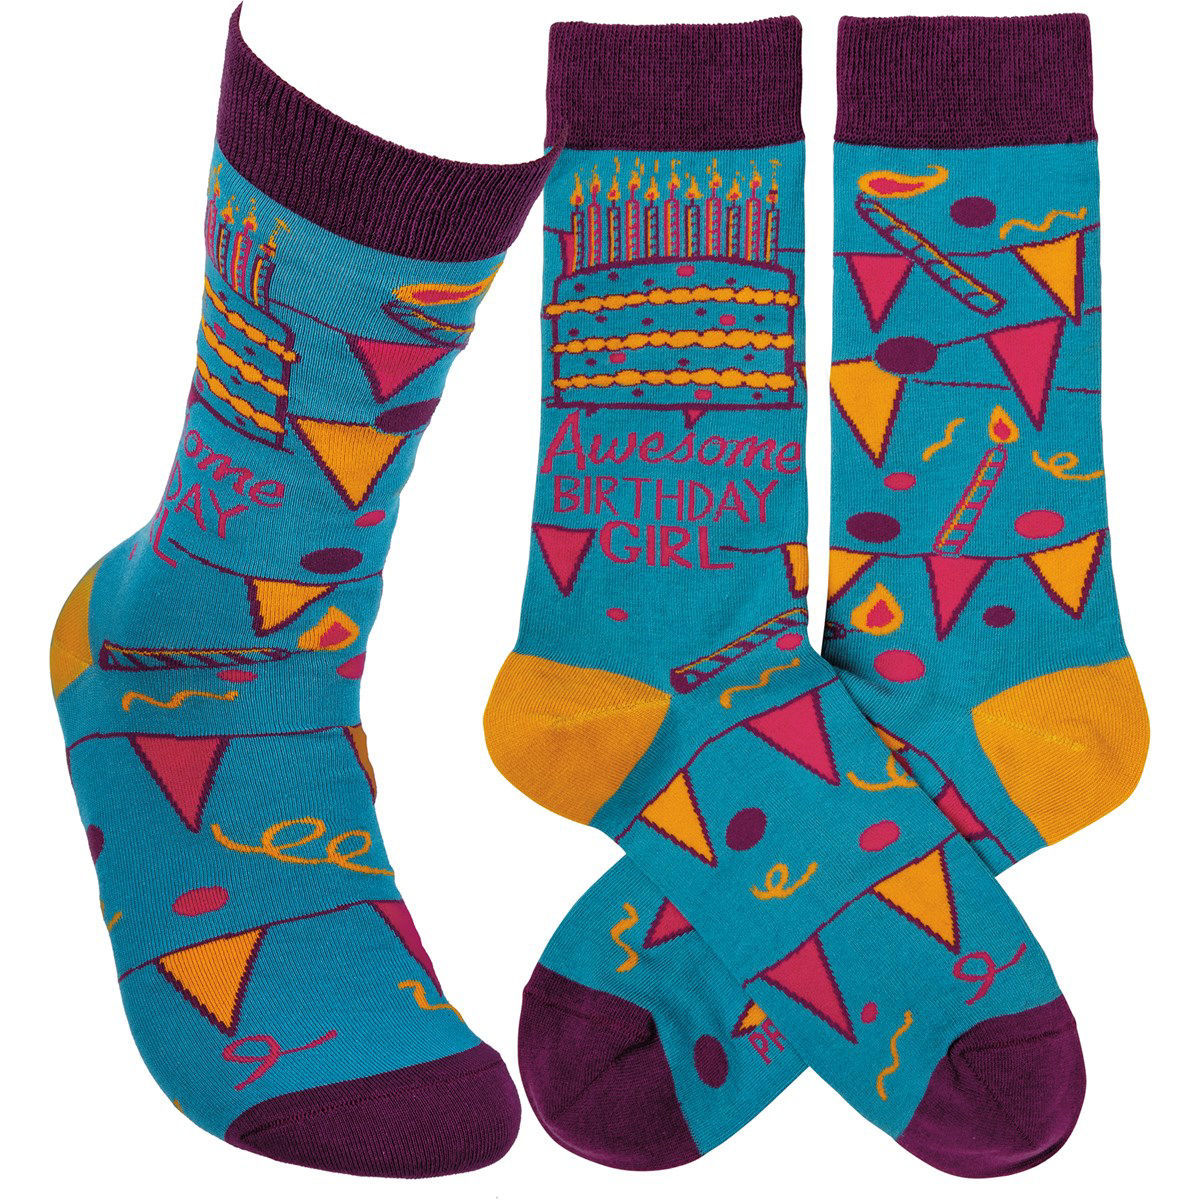 Awesome Birthday Girl Socks by Primitives by Kathy